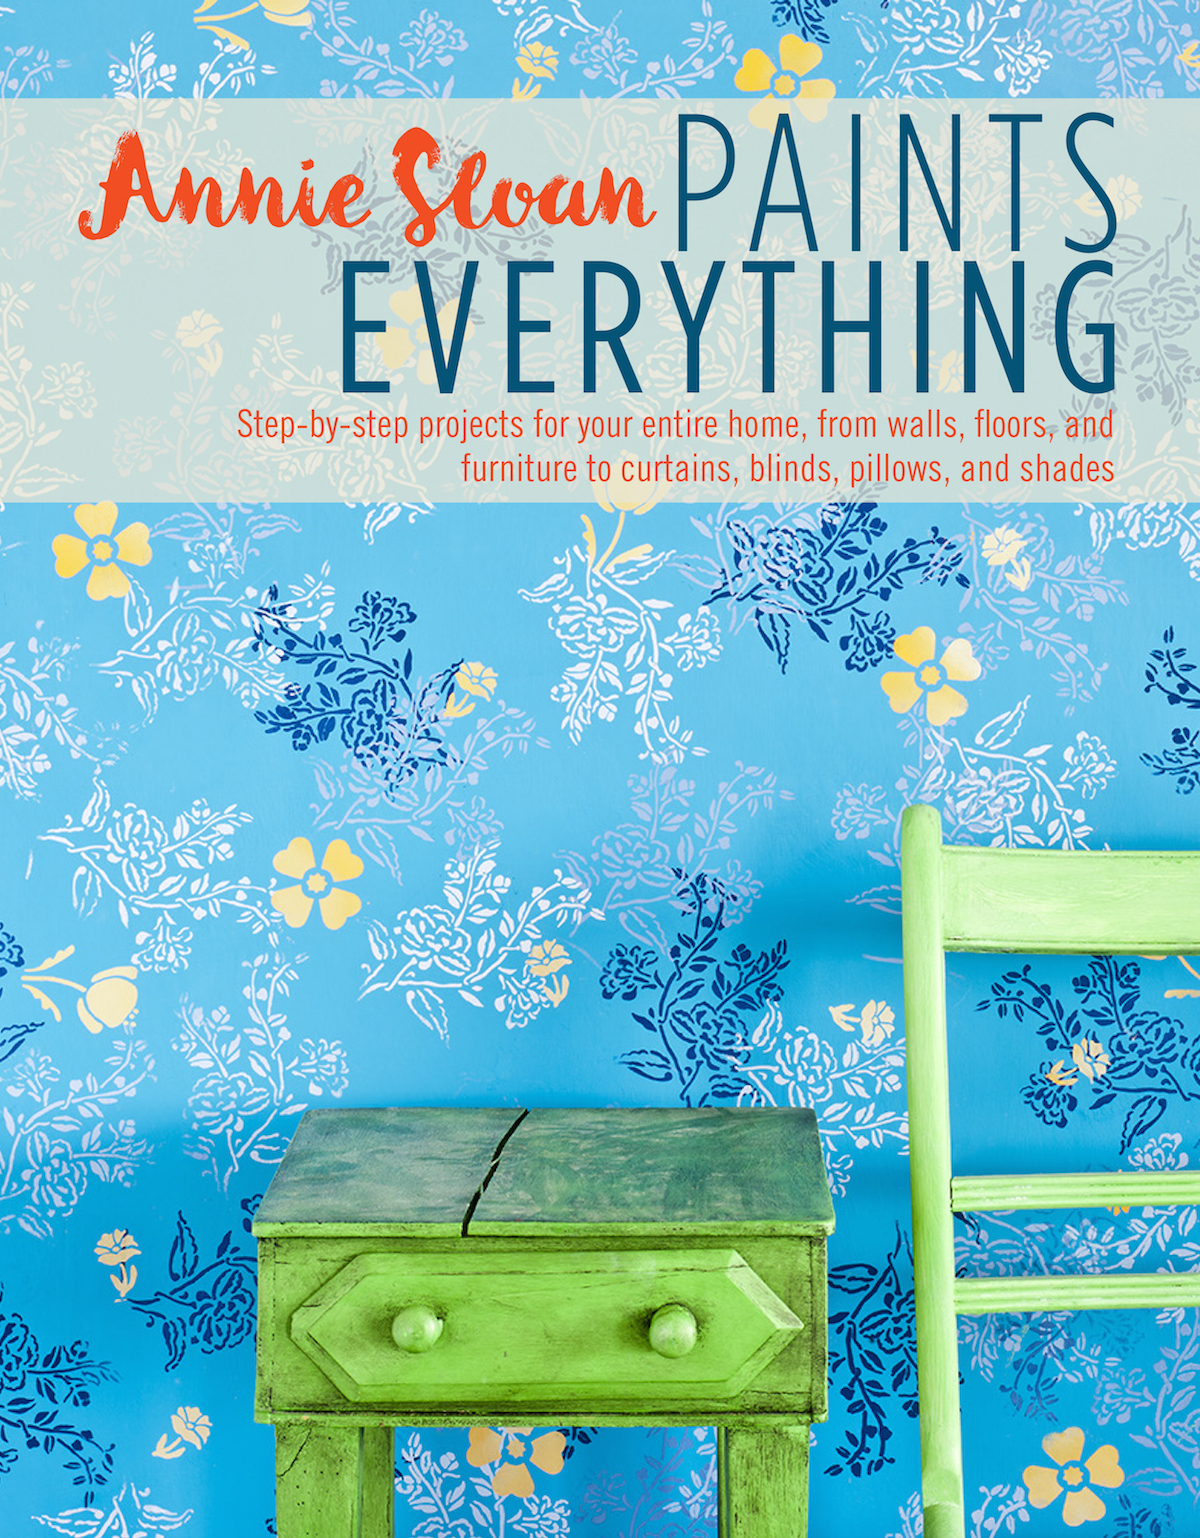 Annie Sloan Paints Everything has a bunch of cool inspiration projects.